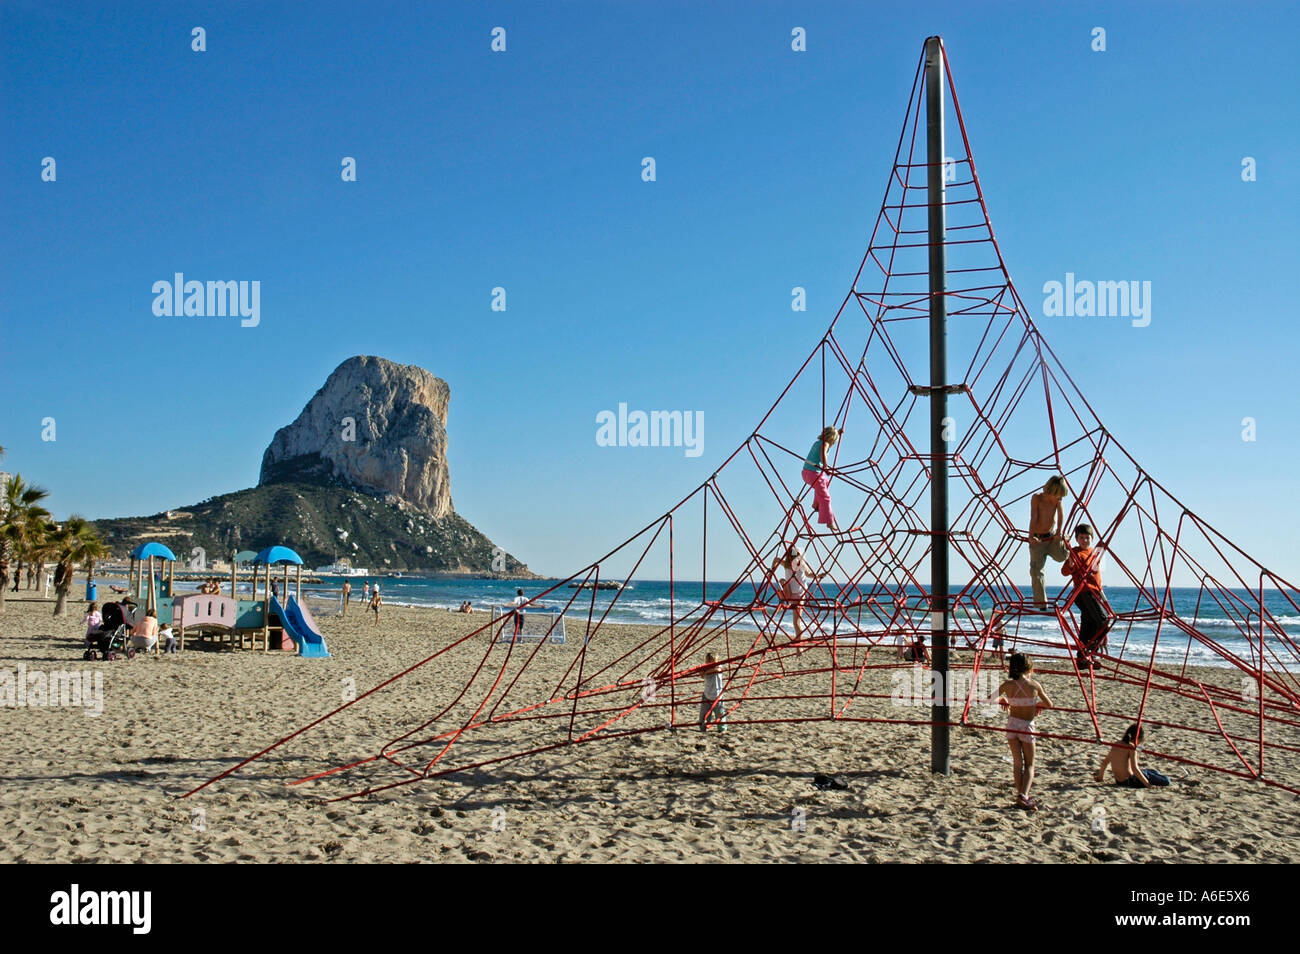 Children play in climbing scaffold at the beach of Calpe, Penon de Ifach, Costa Blanca, Spain - Stock Image